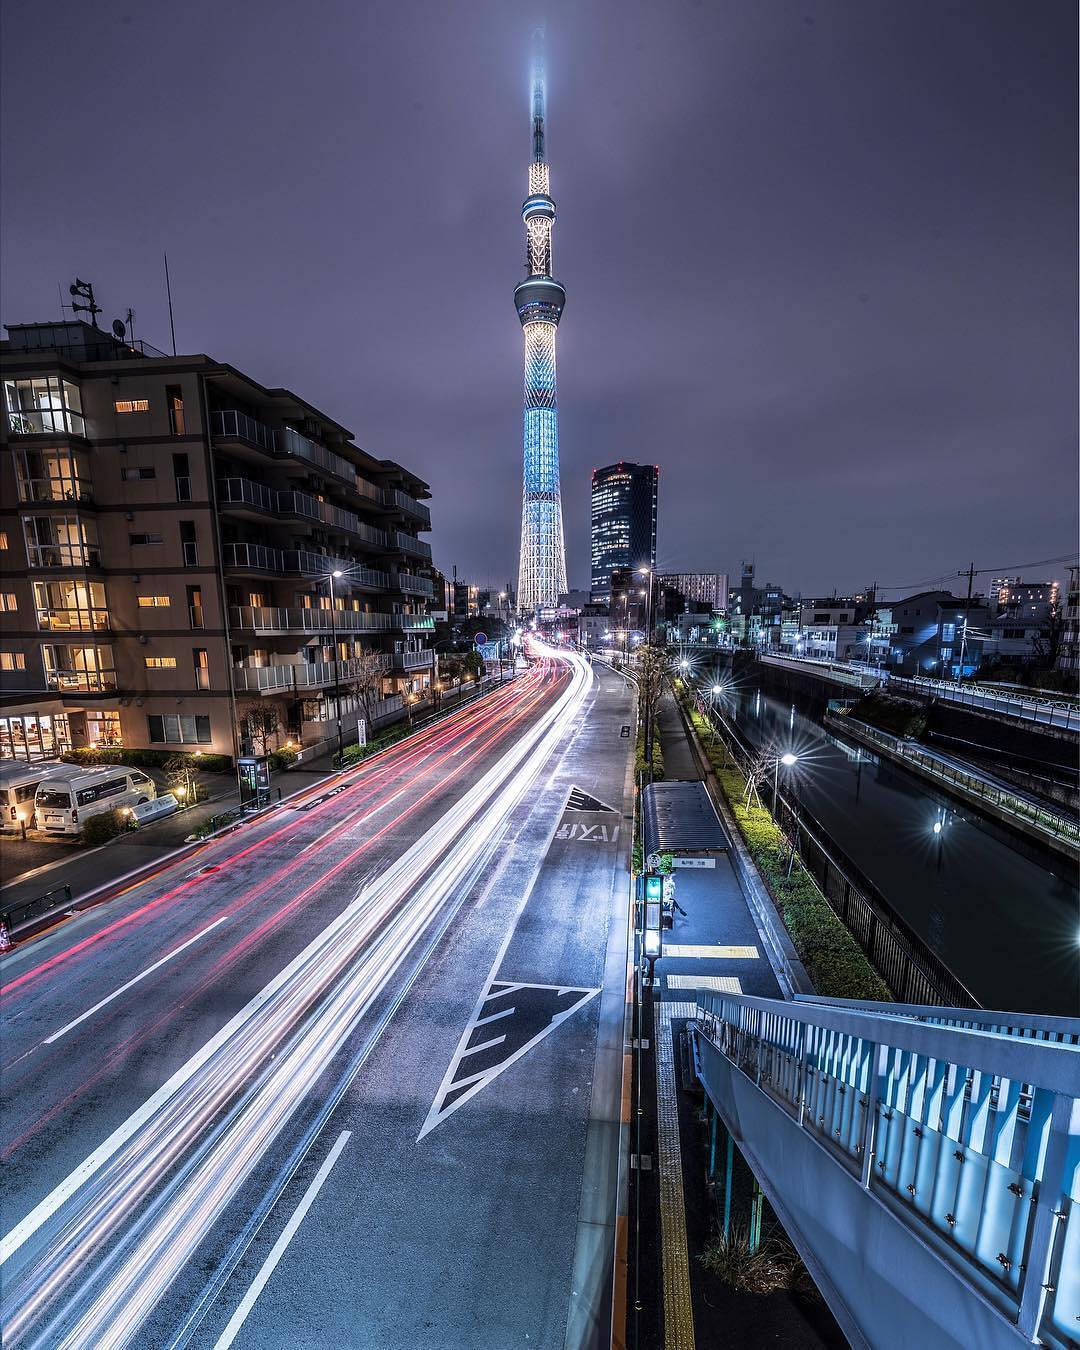 Japan Travel: Have you been up Tokyo Skytree? Japan's